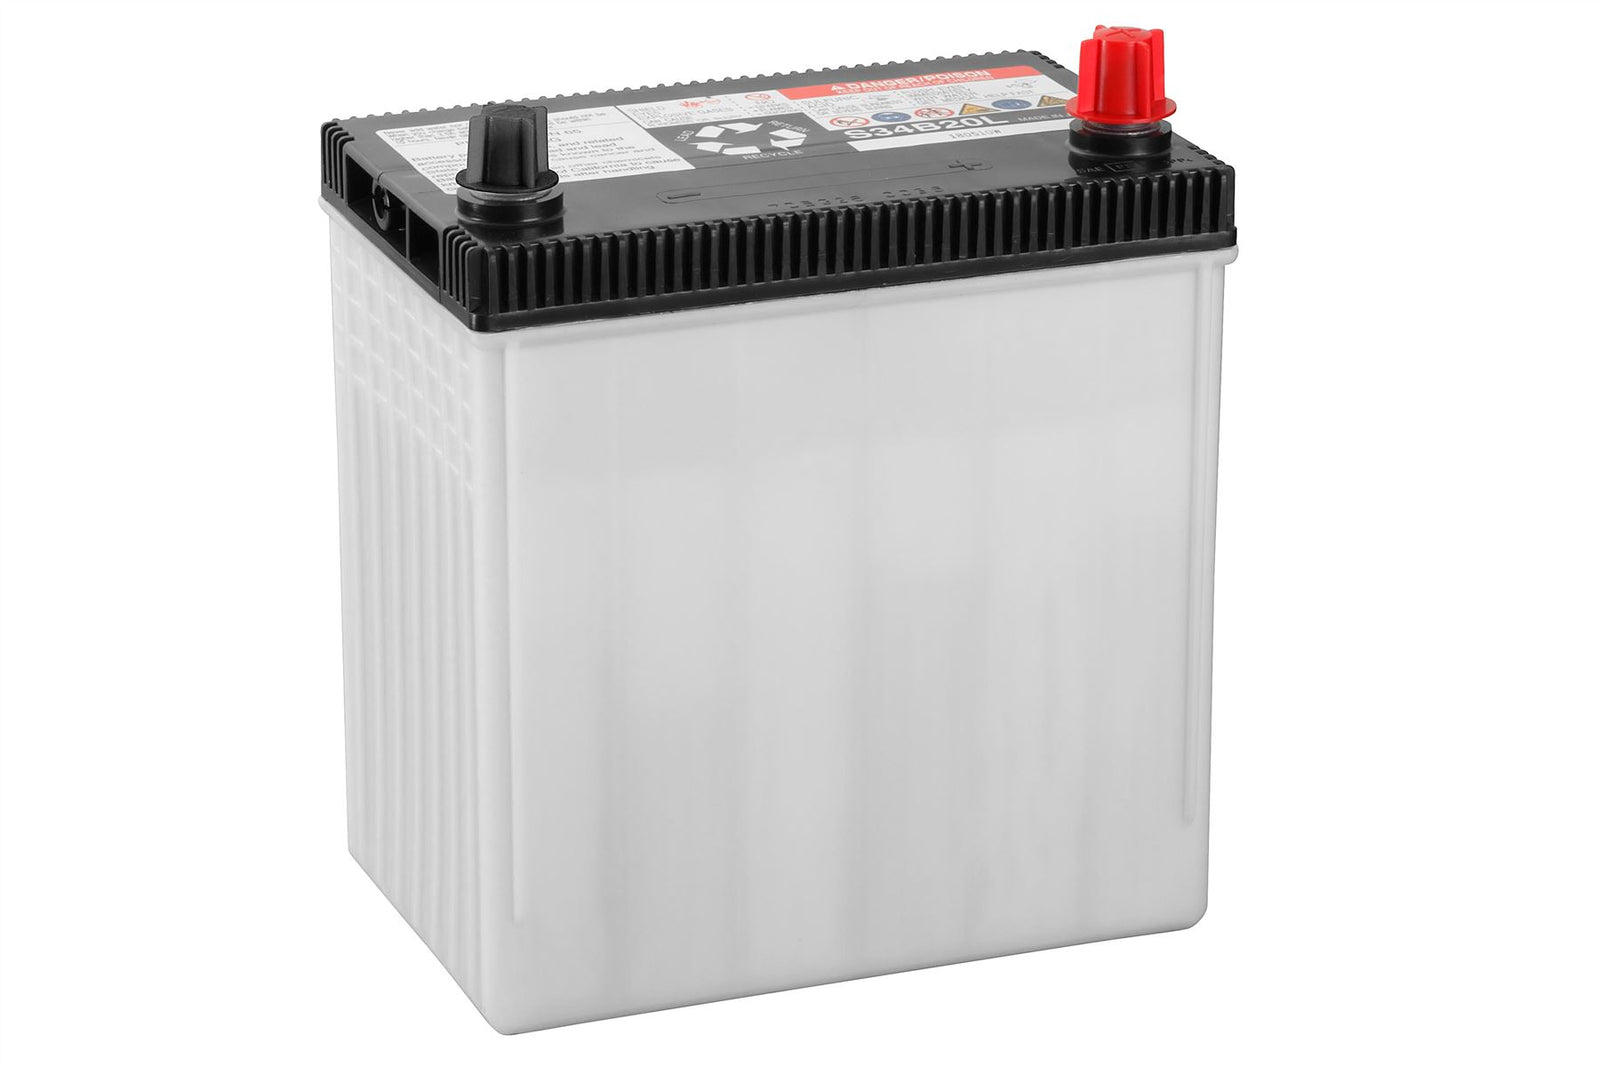 Yuasa HJ-S34B20L Auxilliary, Backup & Specialist Battery